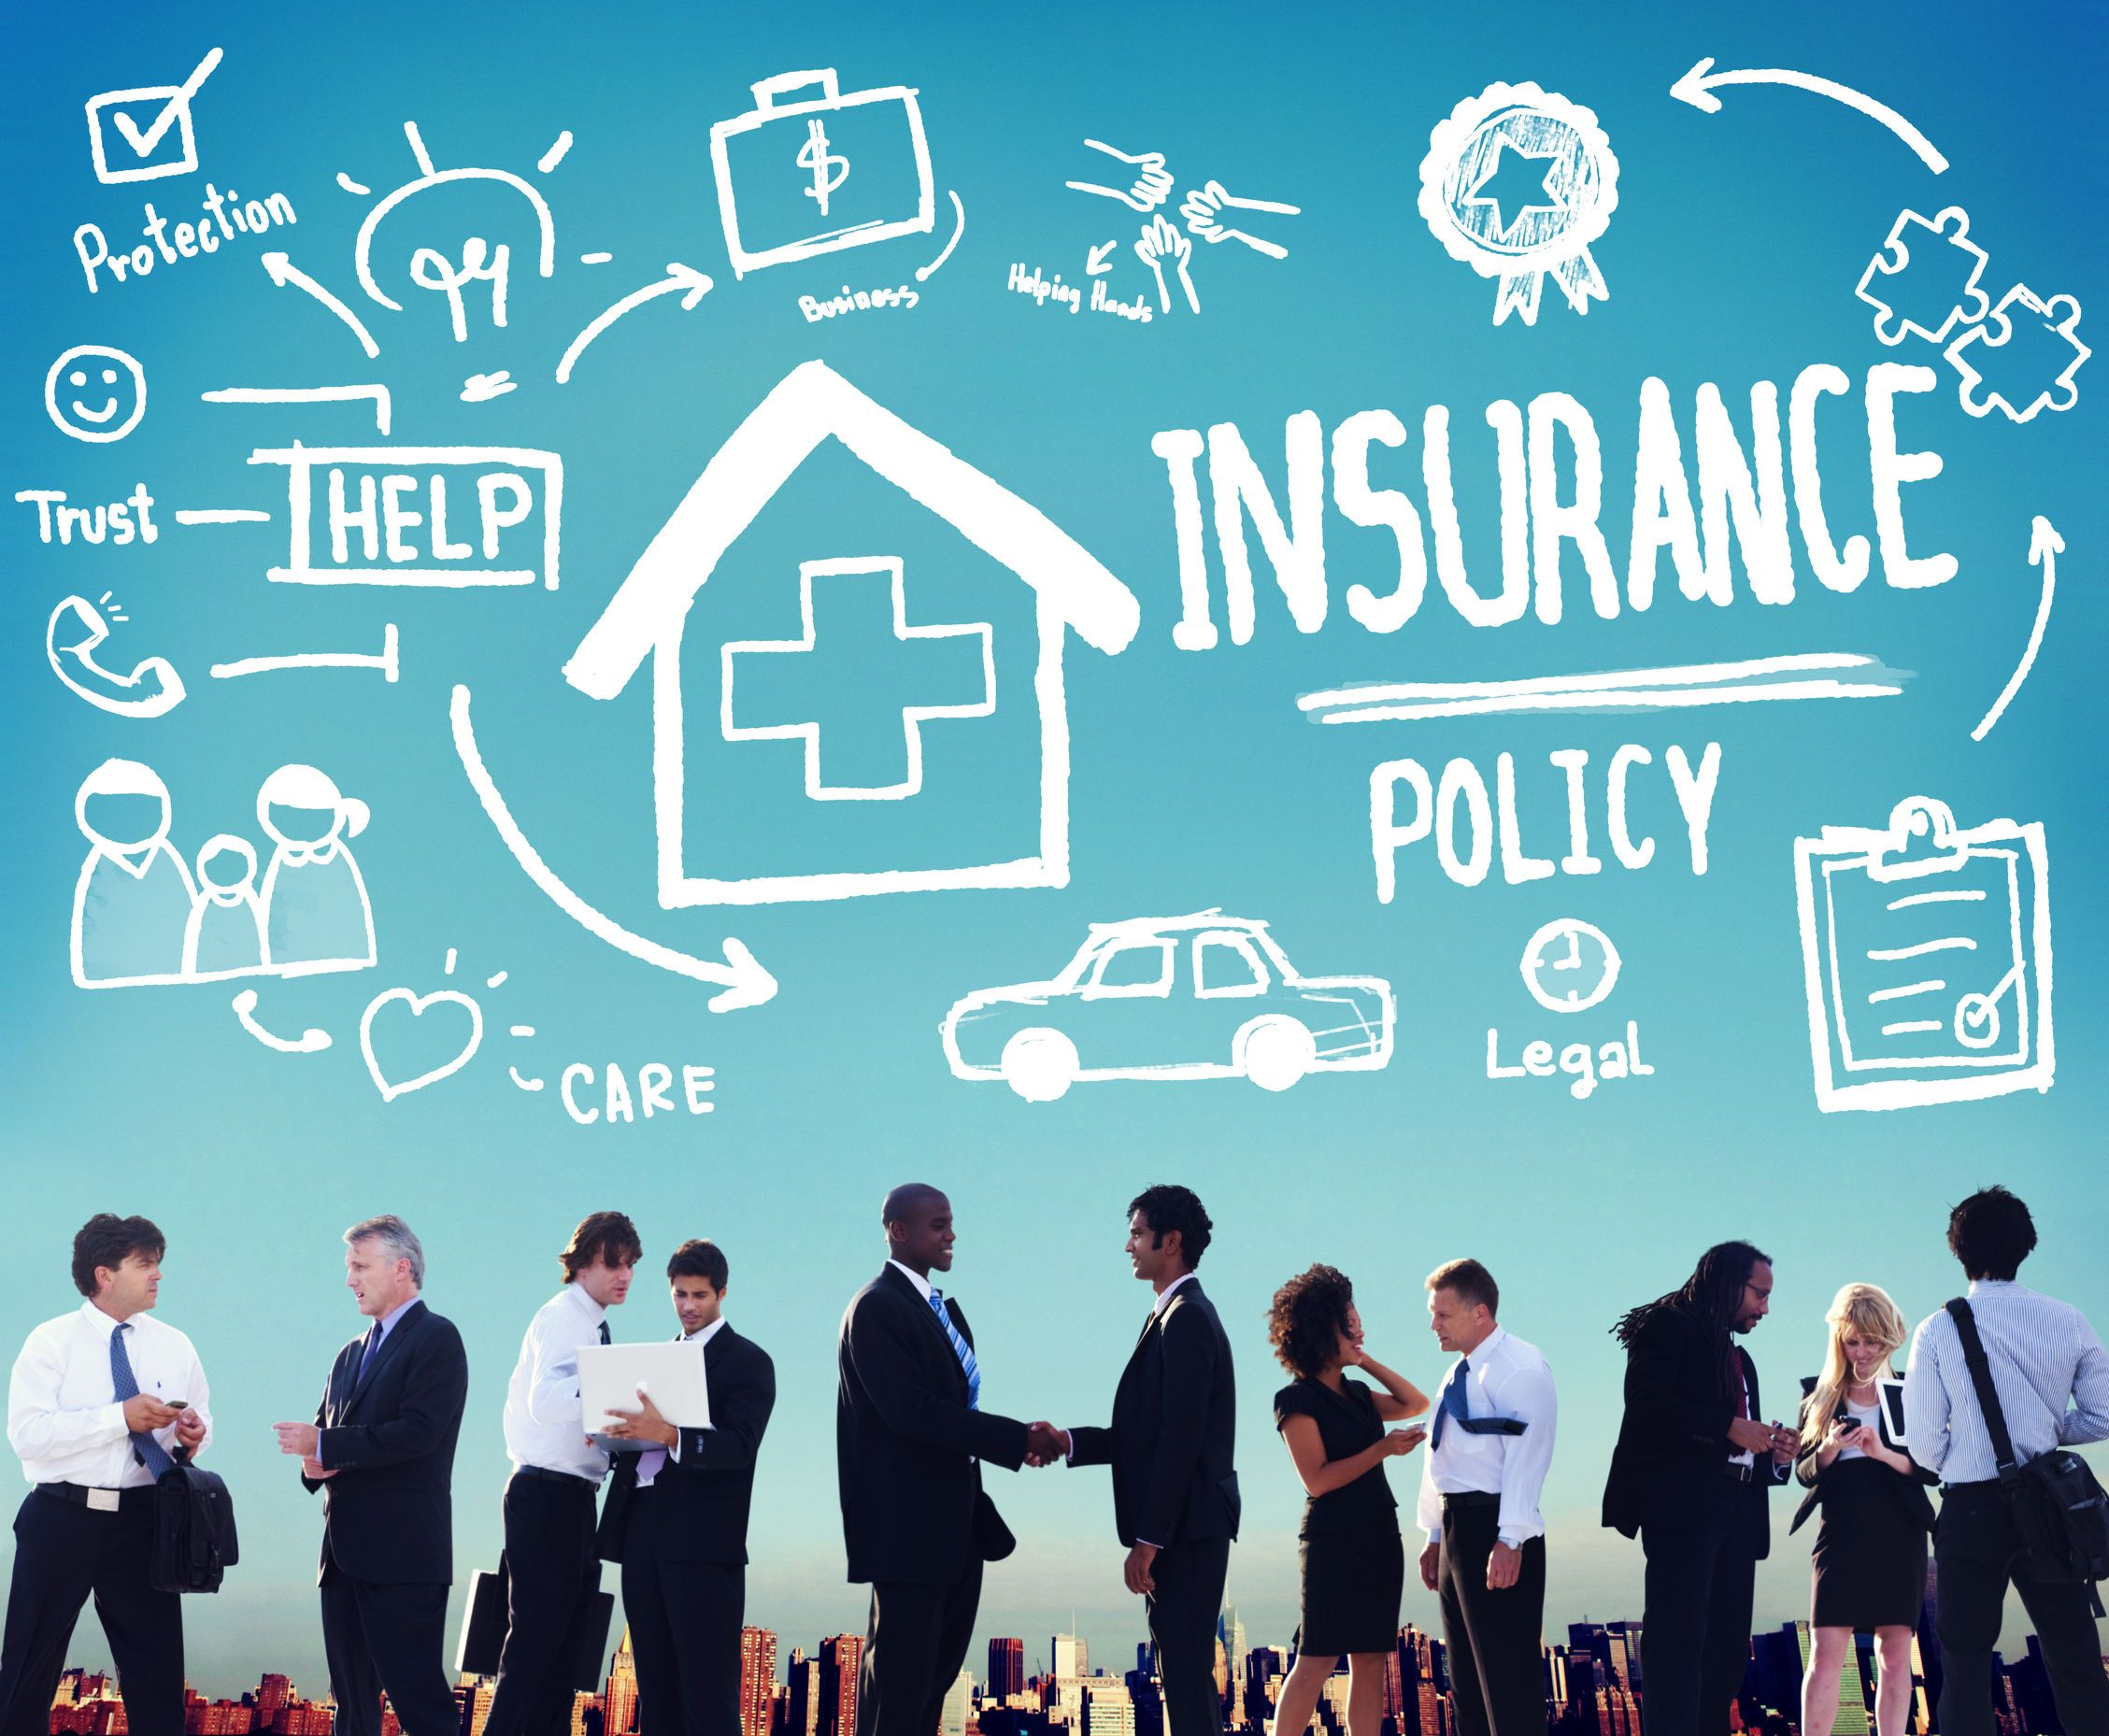 8 Best Health Insurance Companies In Usa Http Www Wanderby Com